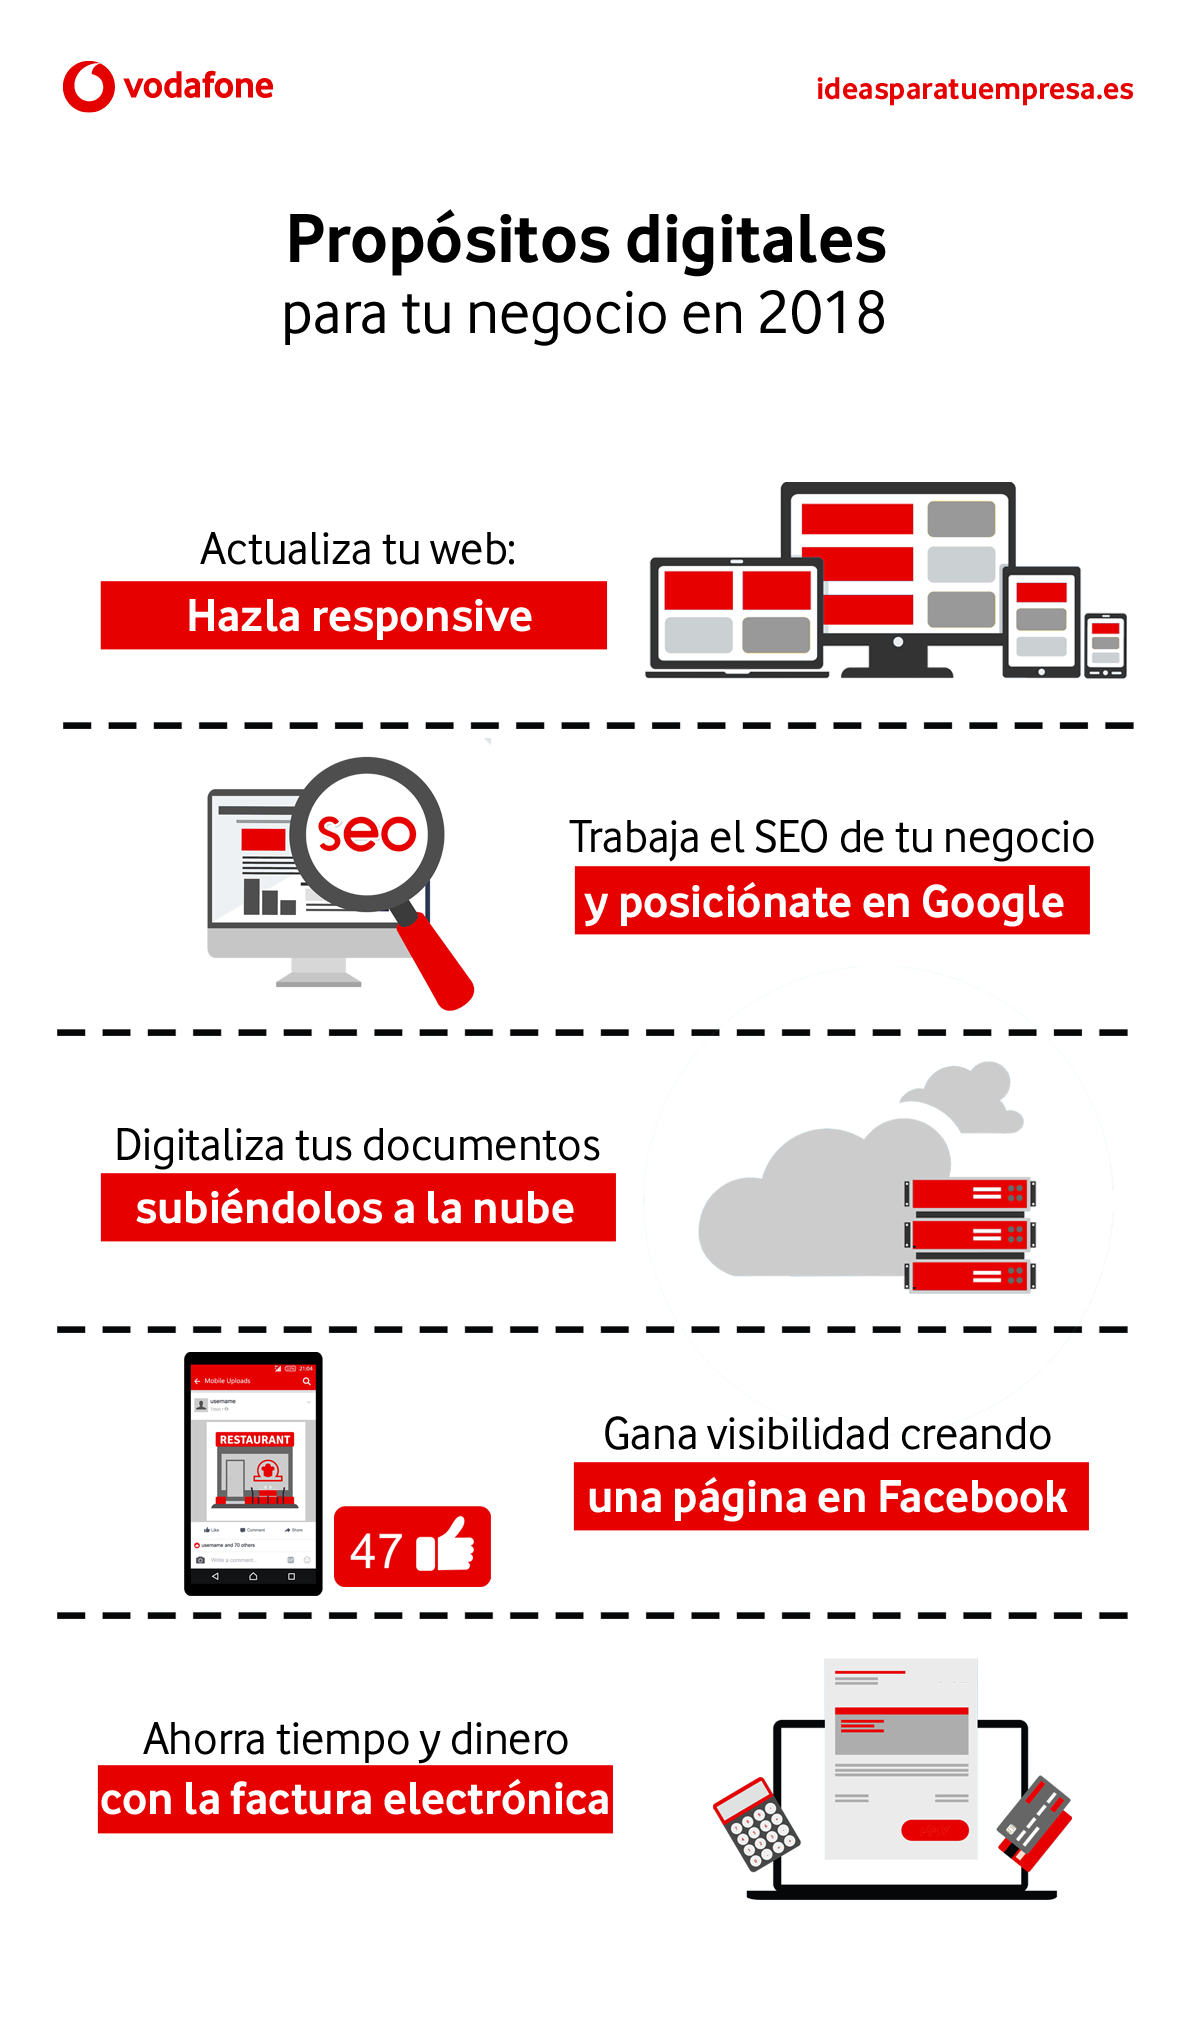 Propositos digitales para tu negocio en 2018